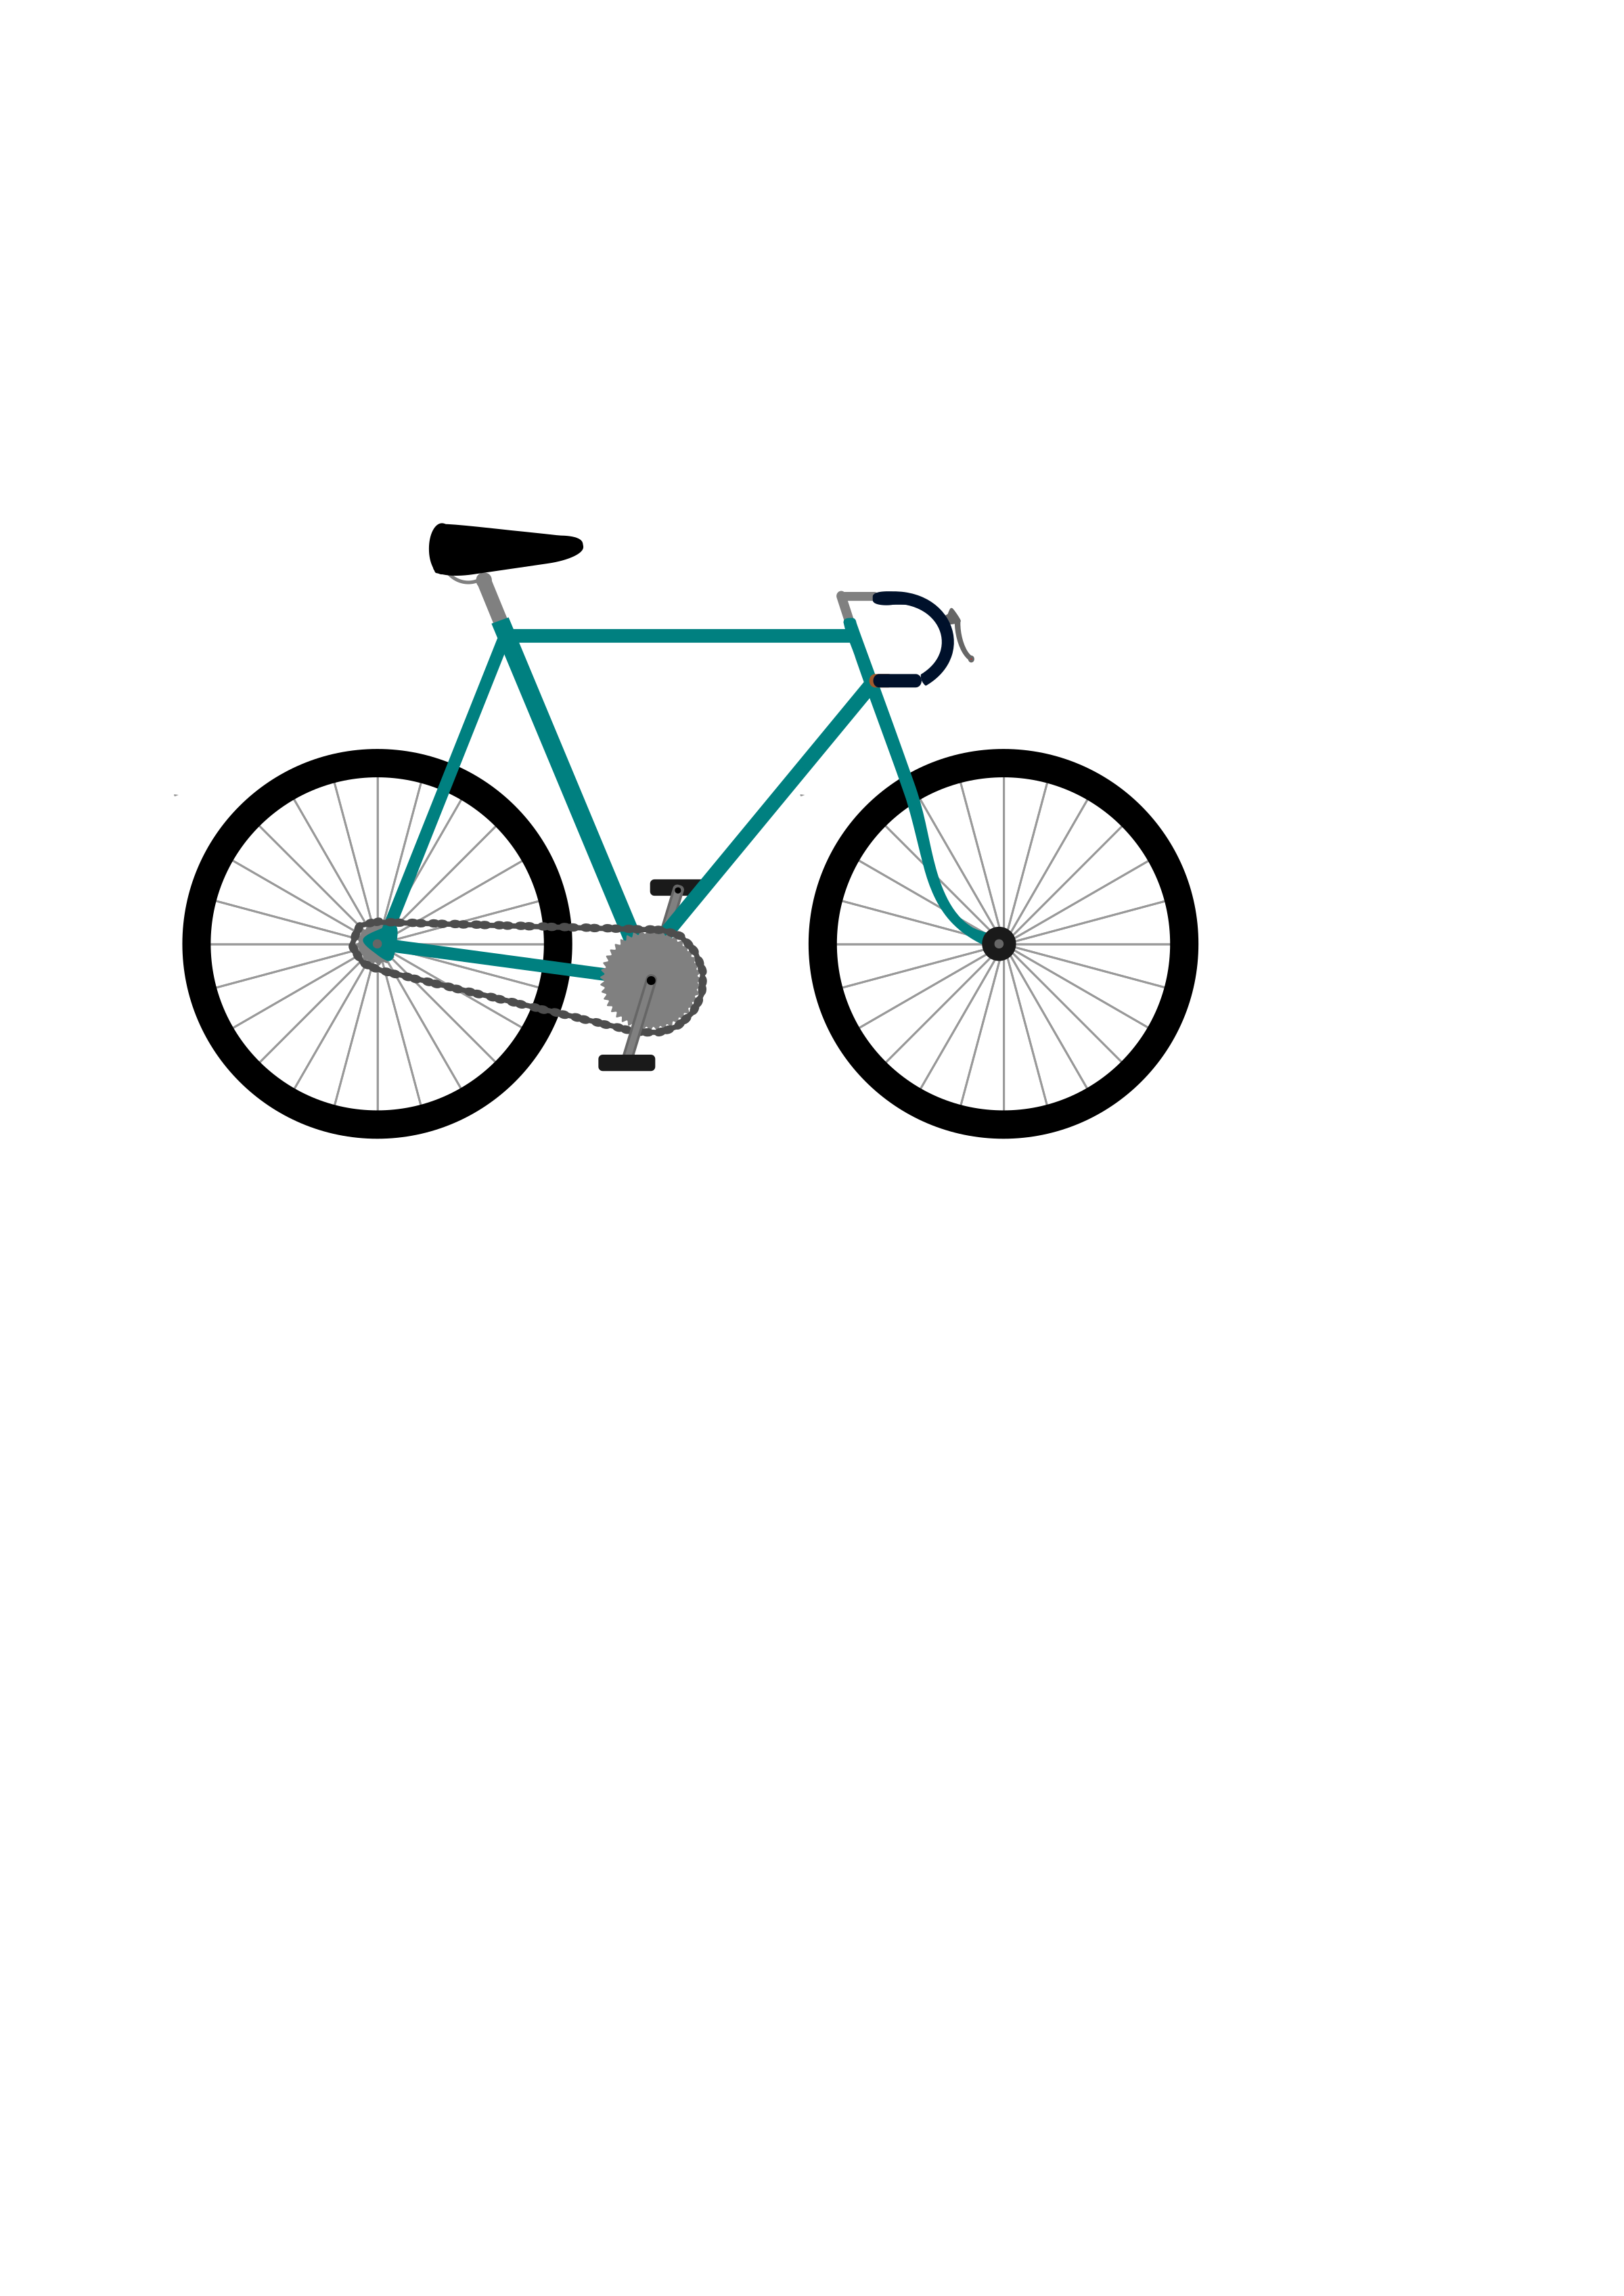 Fixie clipart Bicycle Fixed Clipart Fixed Gear